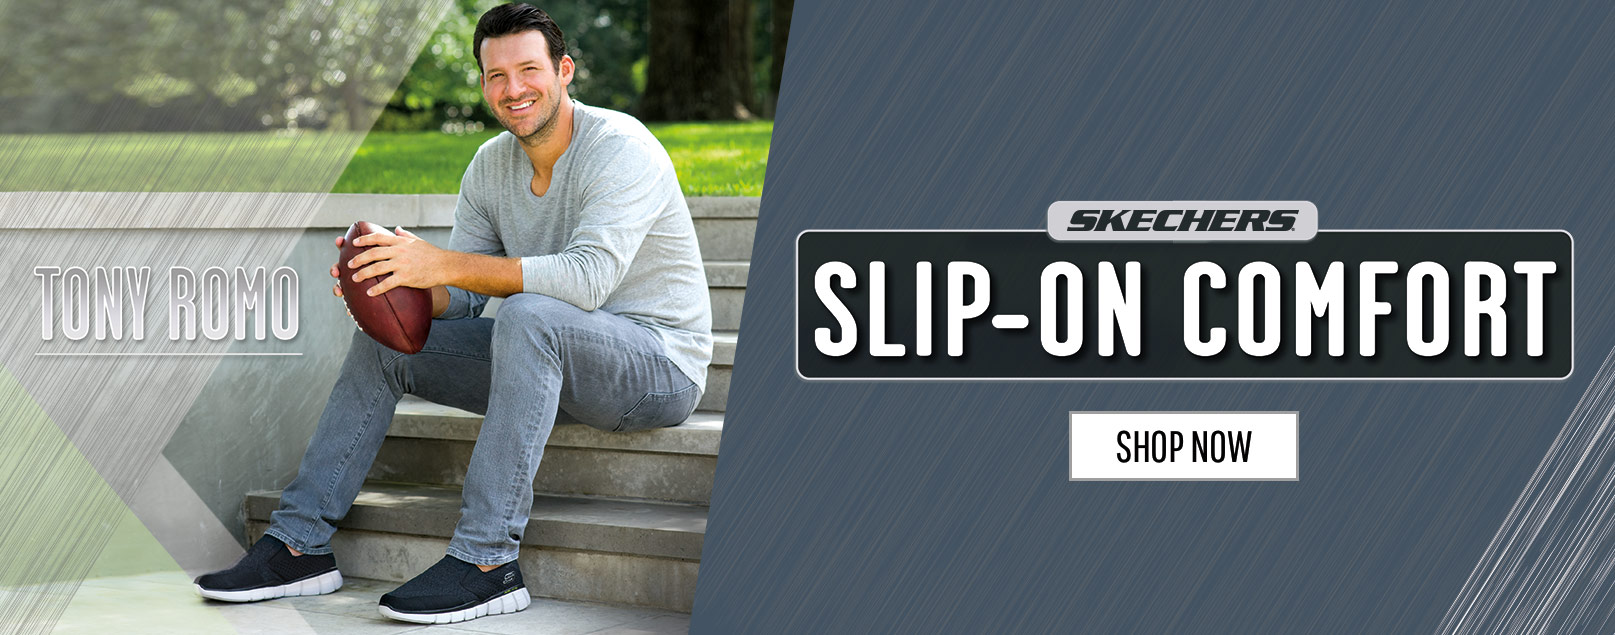 Score some serious style points easily wearing SKECHERS Slip-on Sport Sneakers.  Serious comfort, easy to wear, great athletic looks.